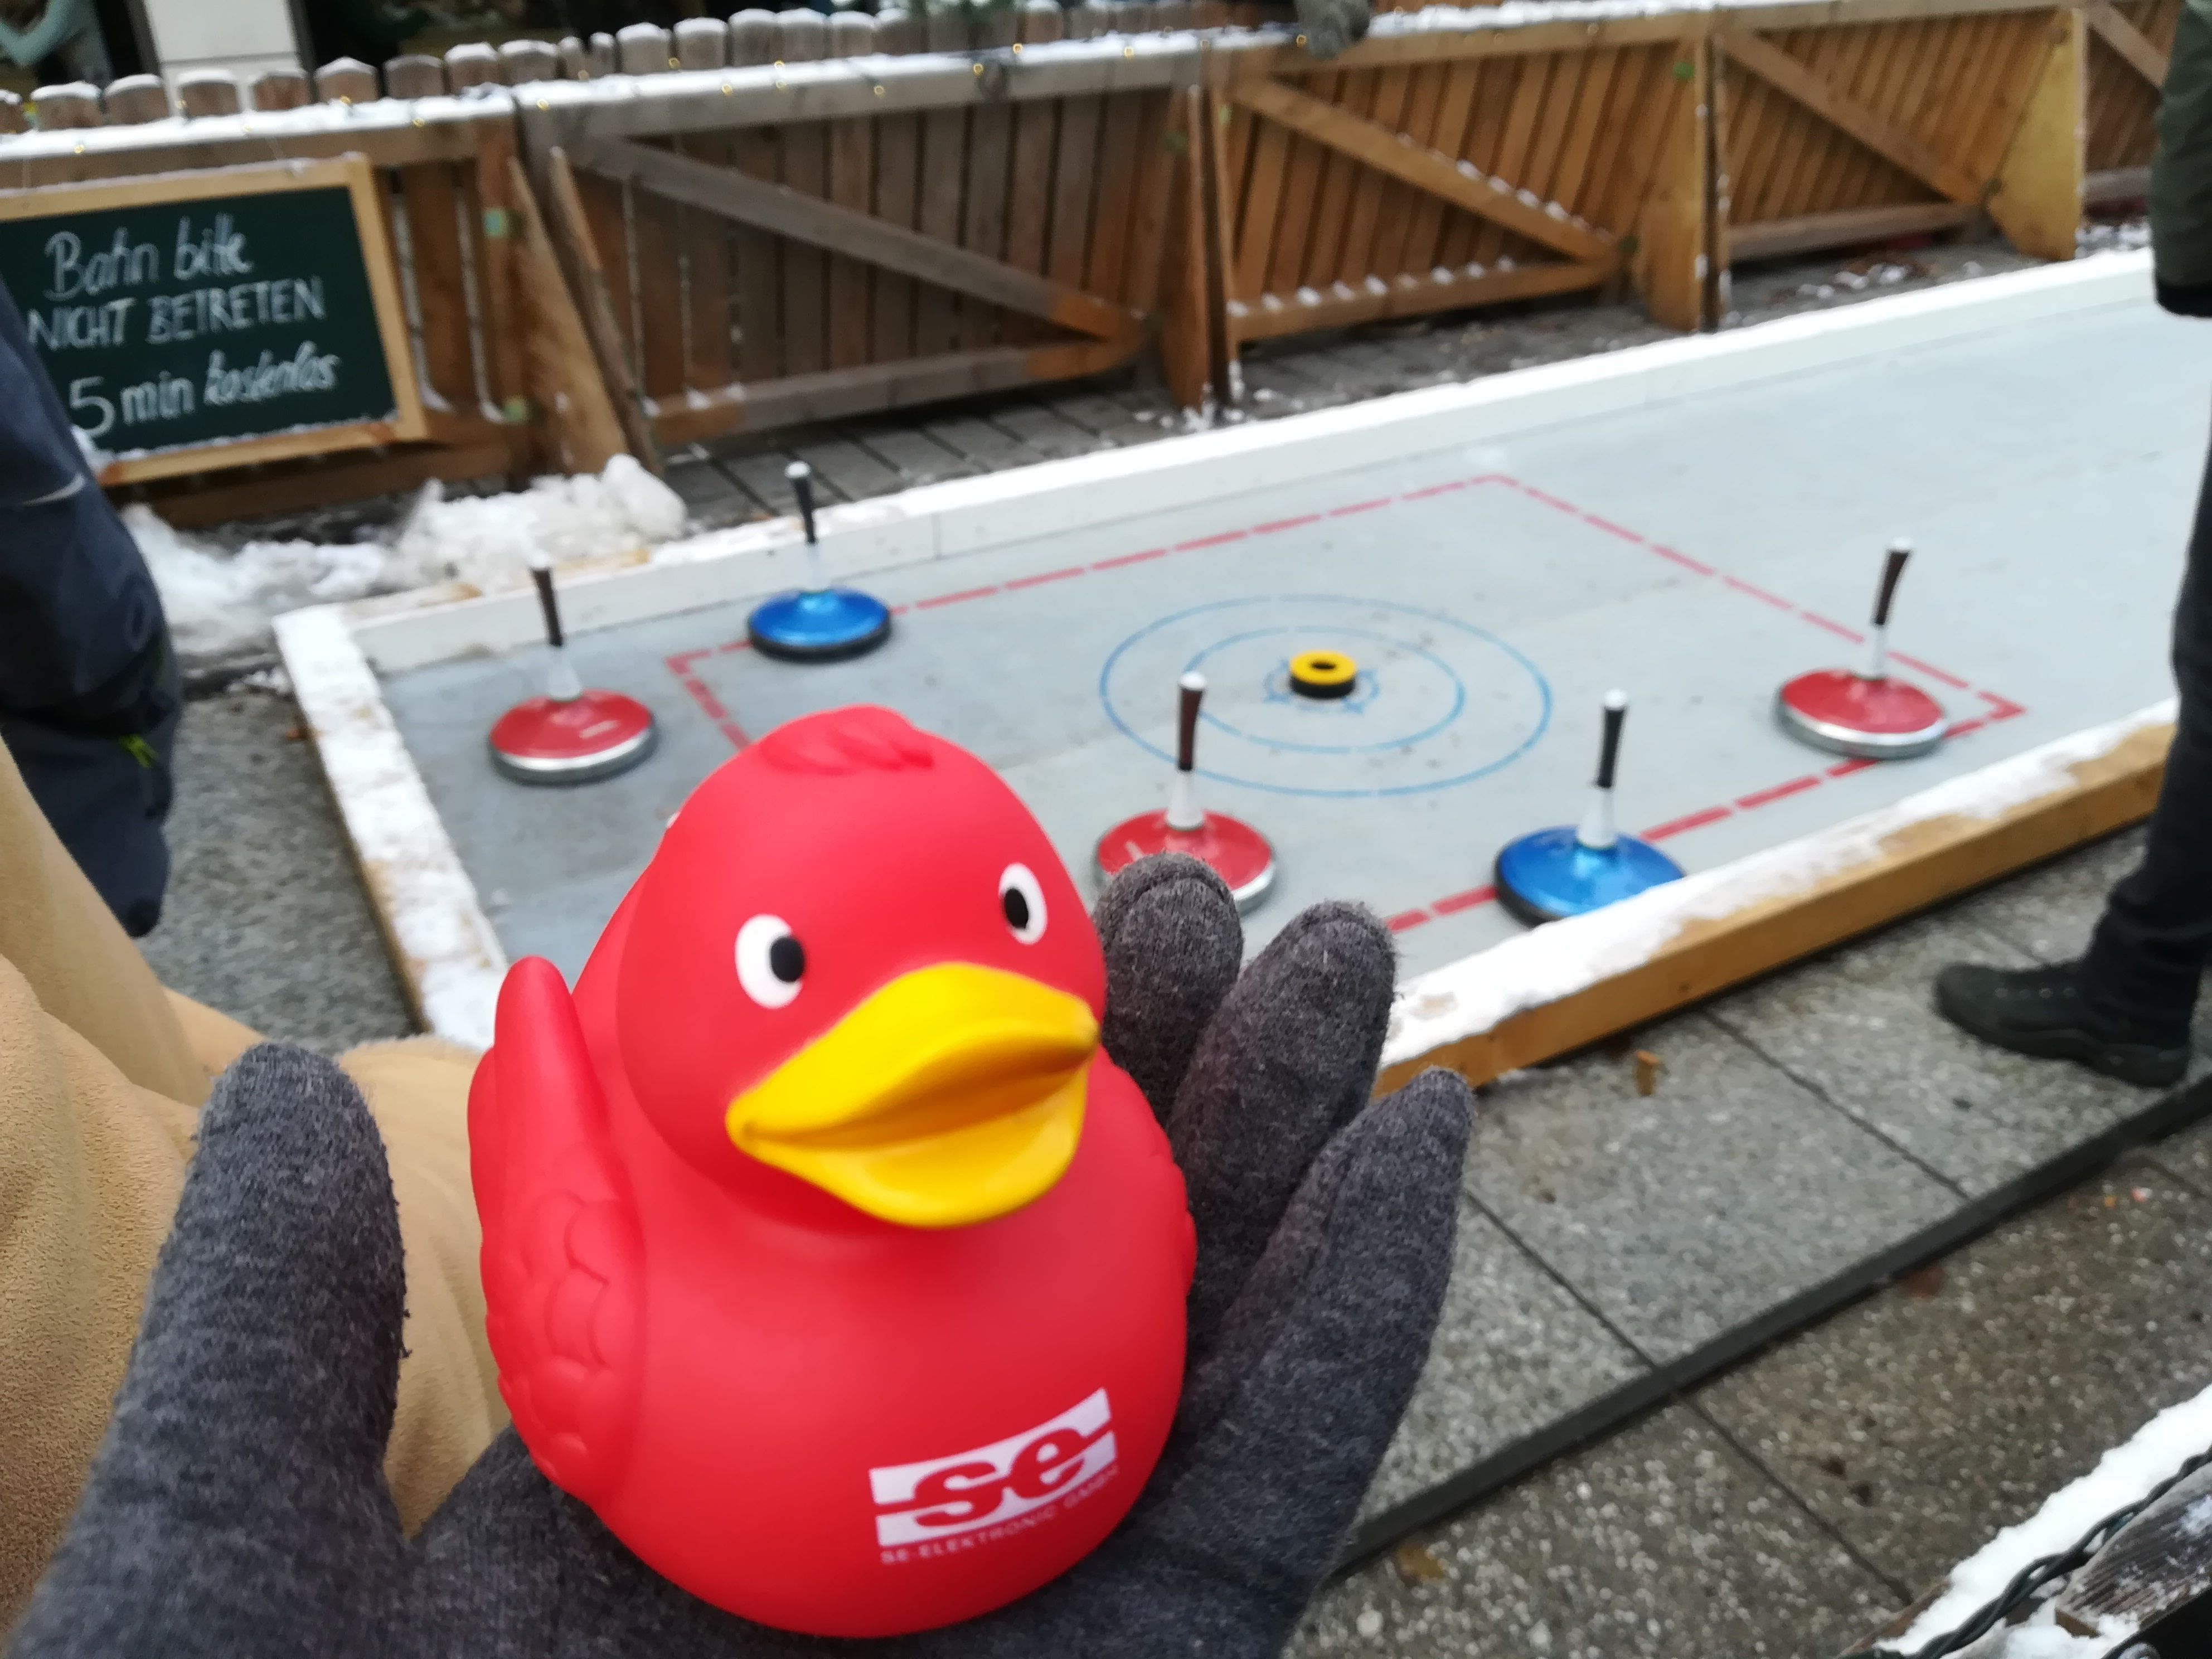 EisstockCup in Göppingen